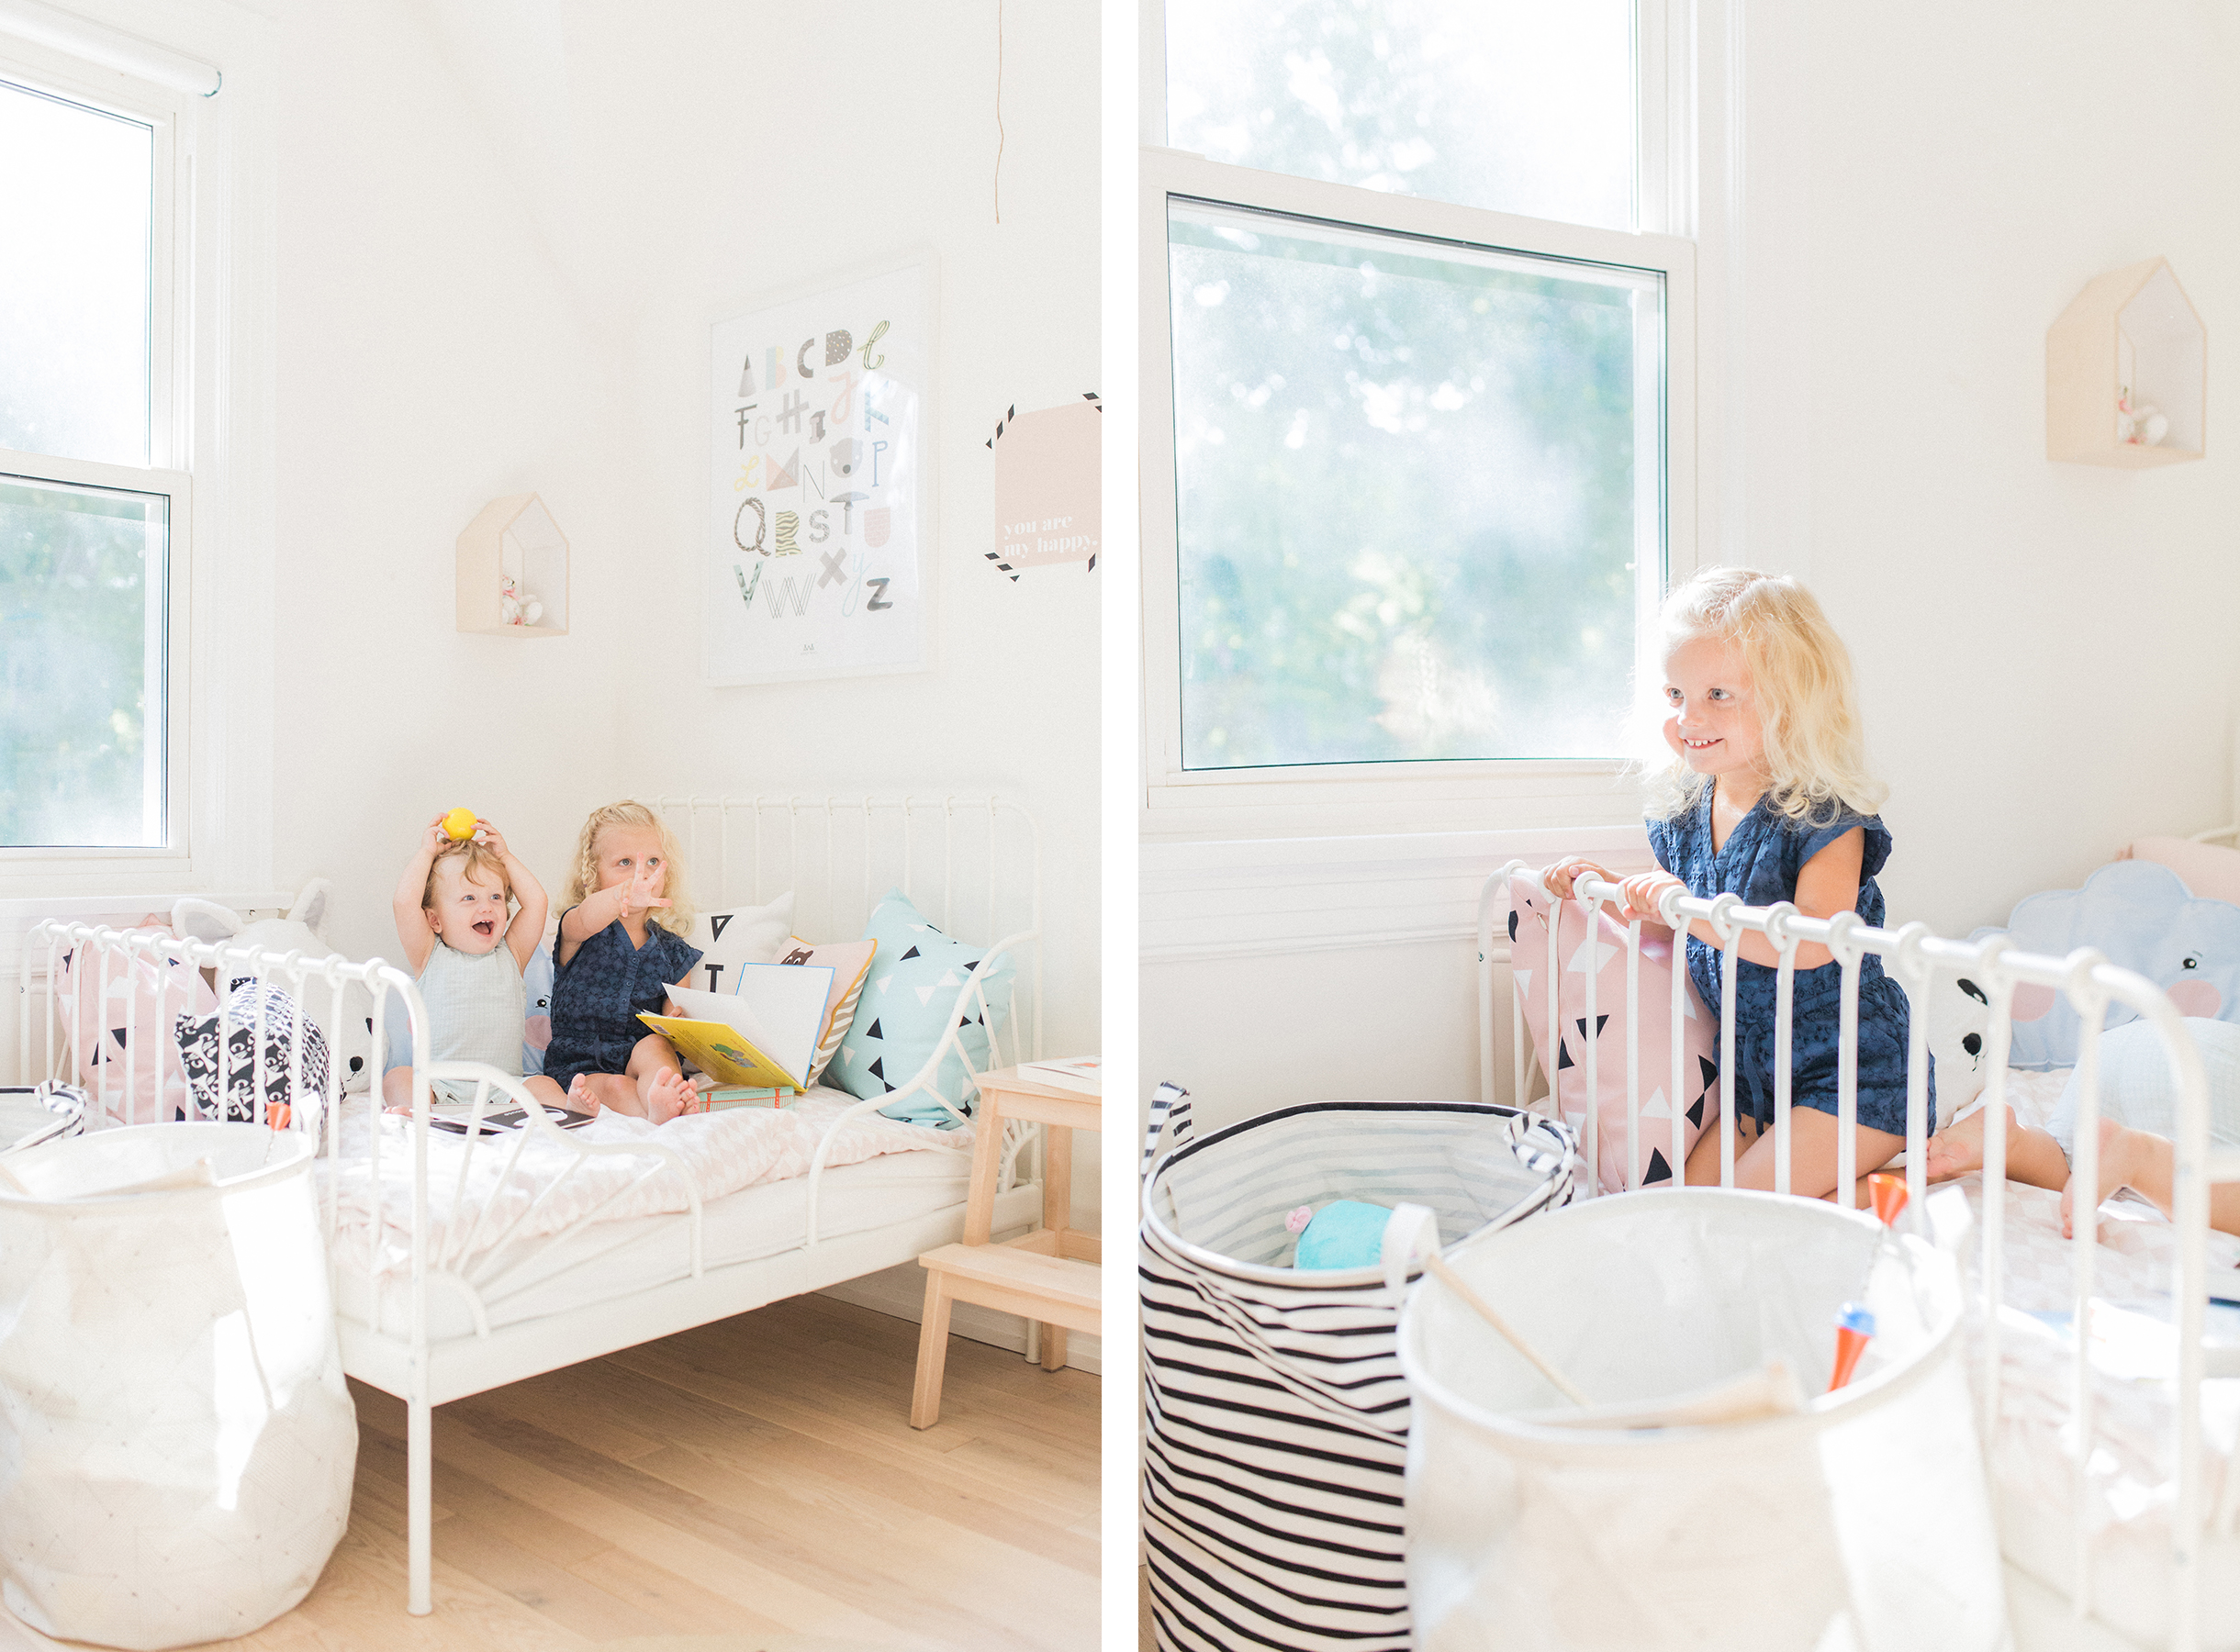 Scandinavian shared kids room - light-filled, pastel baby + toddler playroom - Ikea Minnen bed, House Doctor storage baskets | Happy Grey Lucky